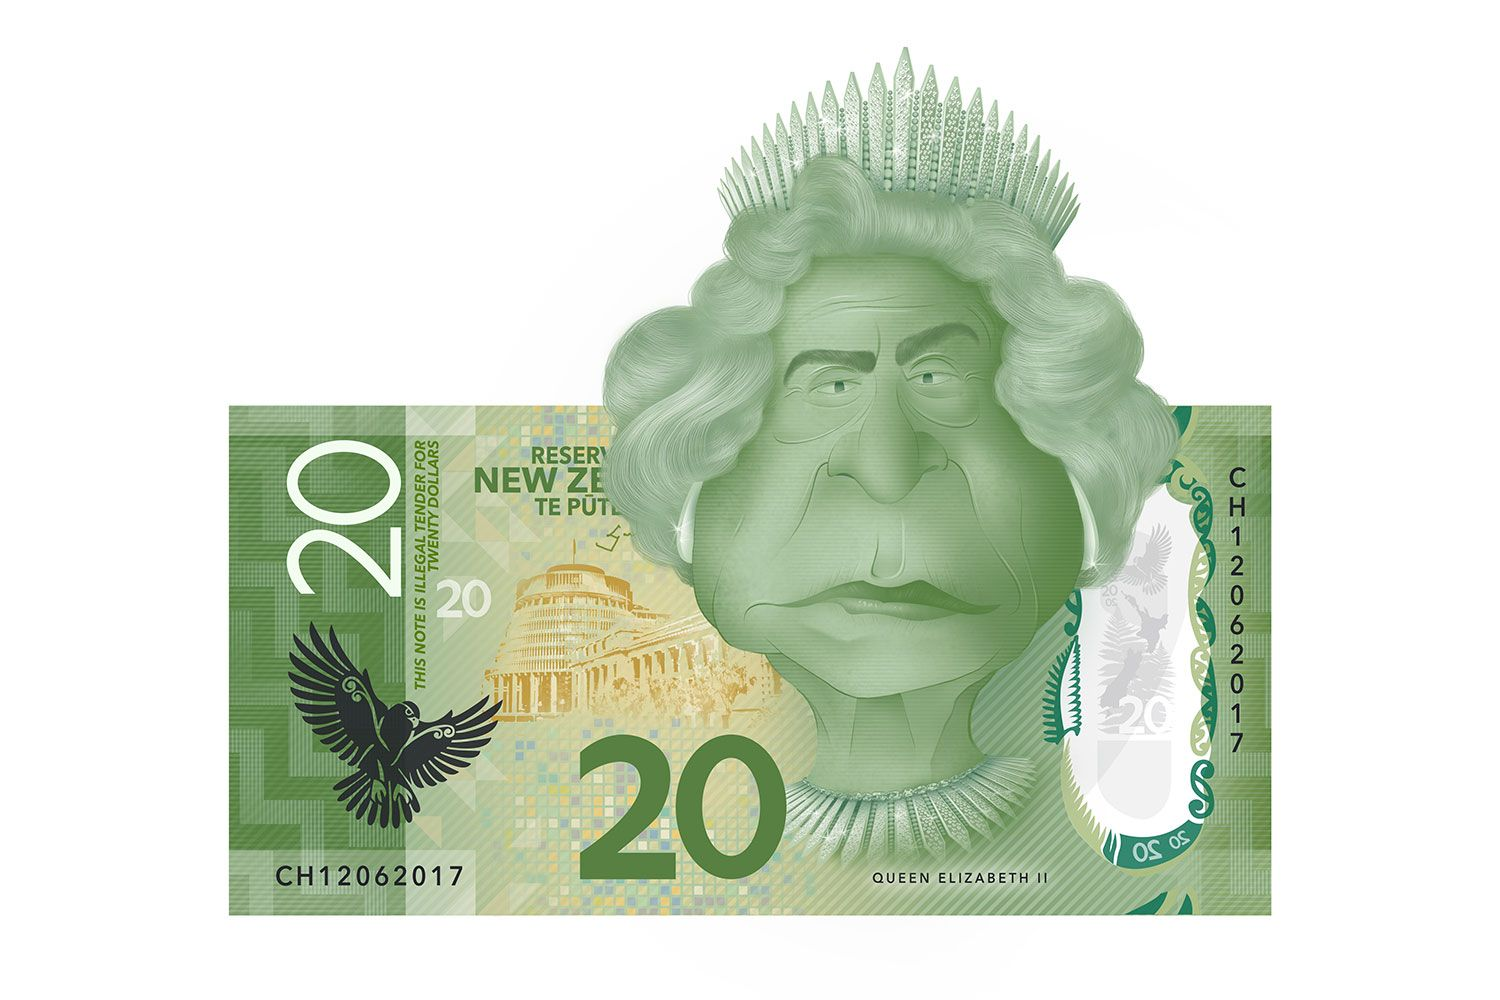 Queen Elizabeth II caricature on the $20 New Zealand bank note.  Illustration made in Photoshop  #graphic #illustration #caricature #photoshop